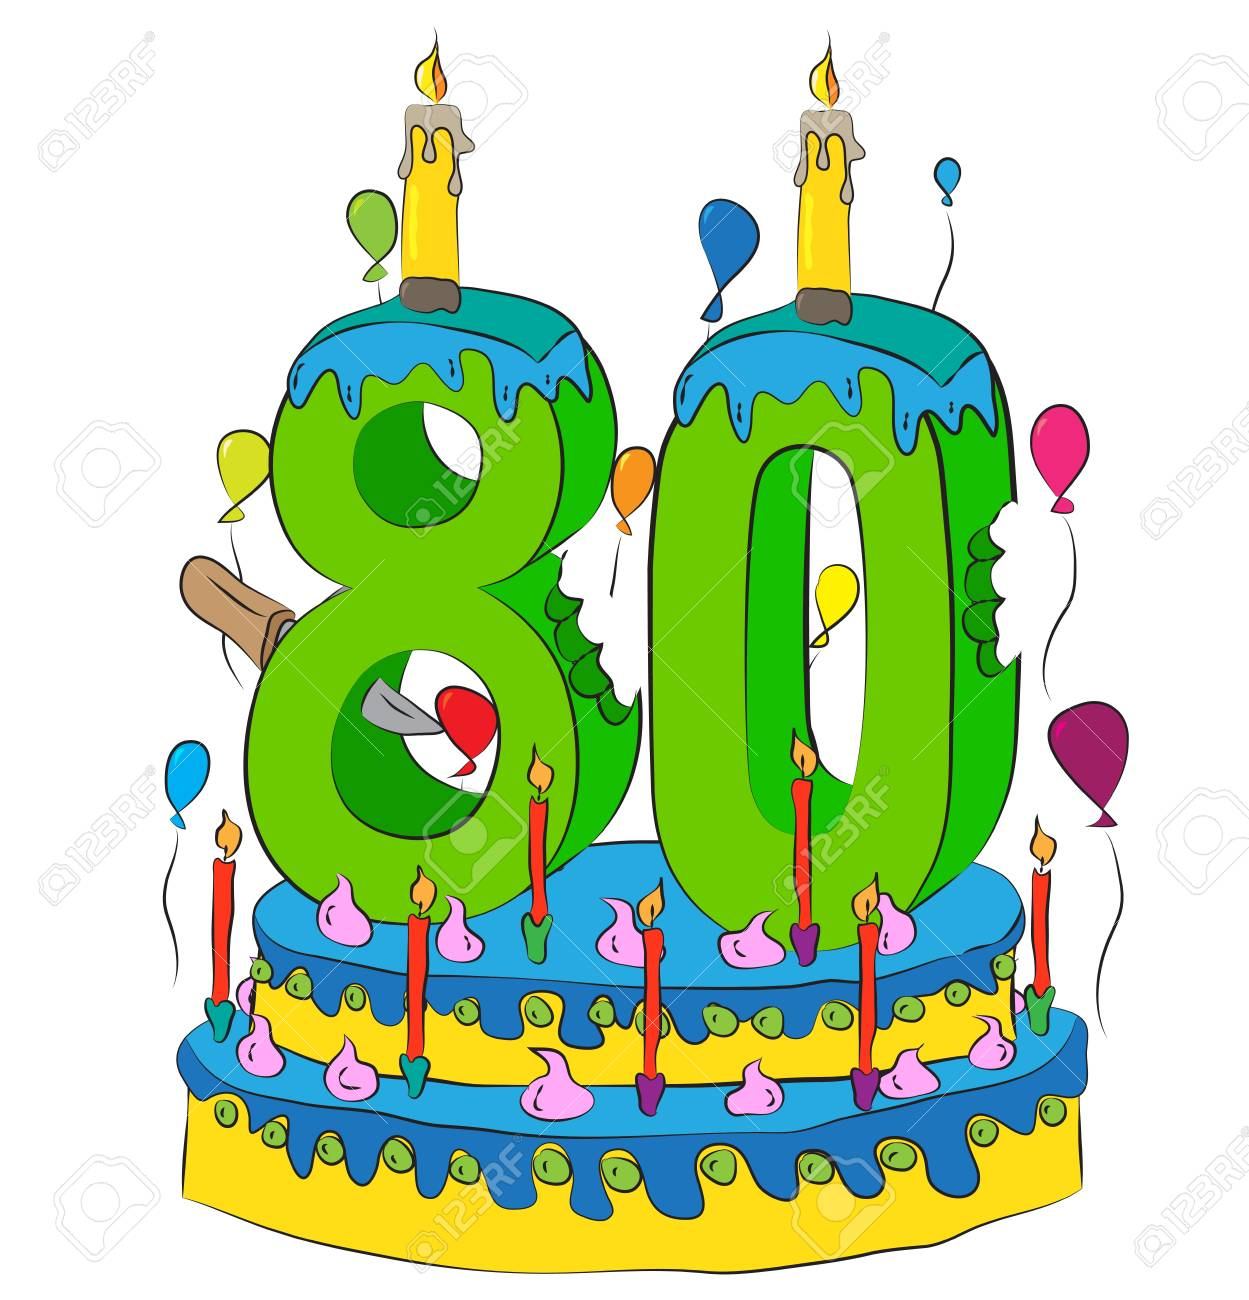 80 Birthday Cake With Number Eighty Candle Celebrating Eightieth